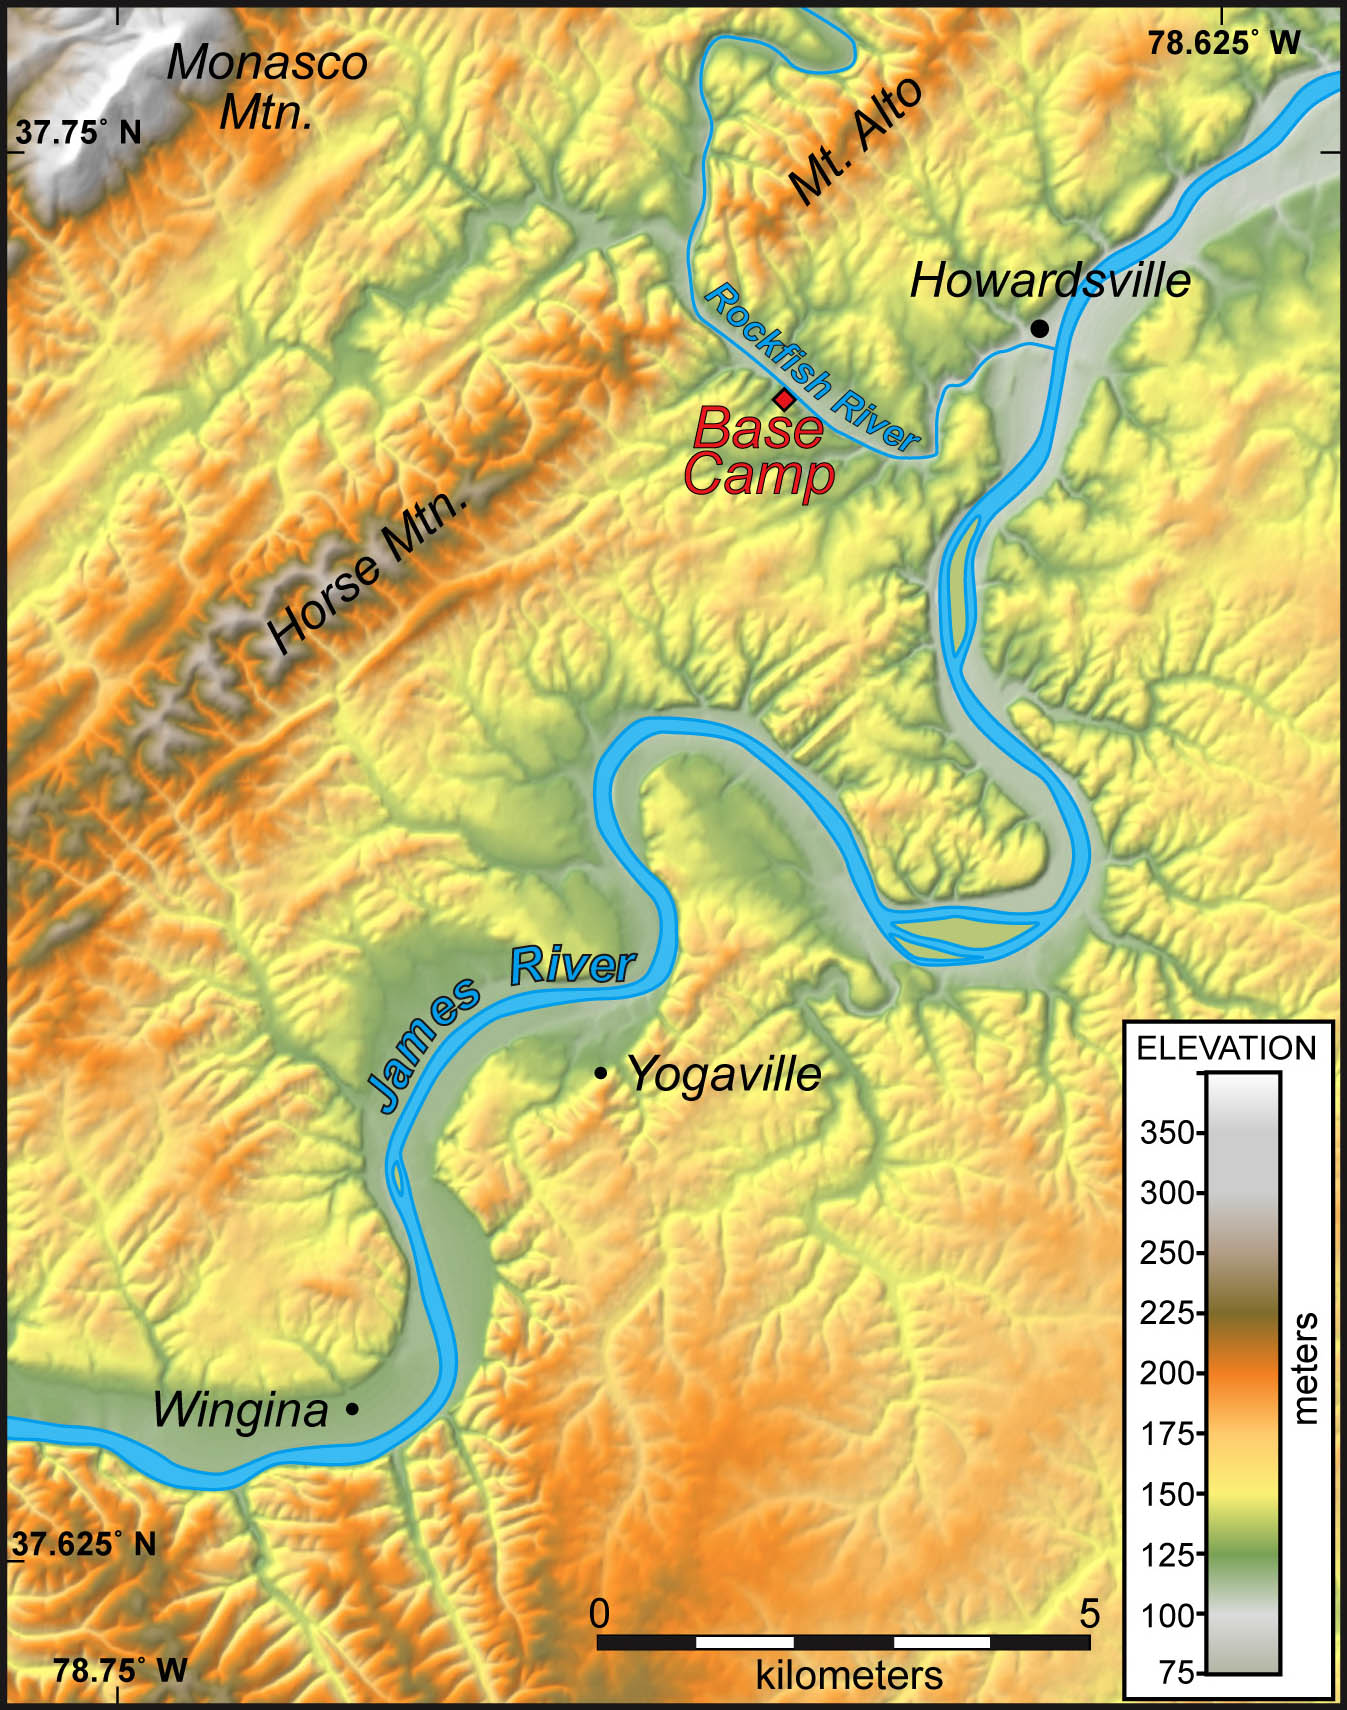 Shaded relief map of the study area near Howardsville, Virginia.  Note the linear elements in the topography to the northwest of the James River and the dendritic drainage to the southeast of the james River.